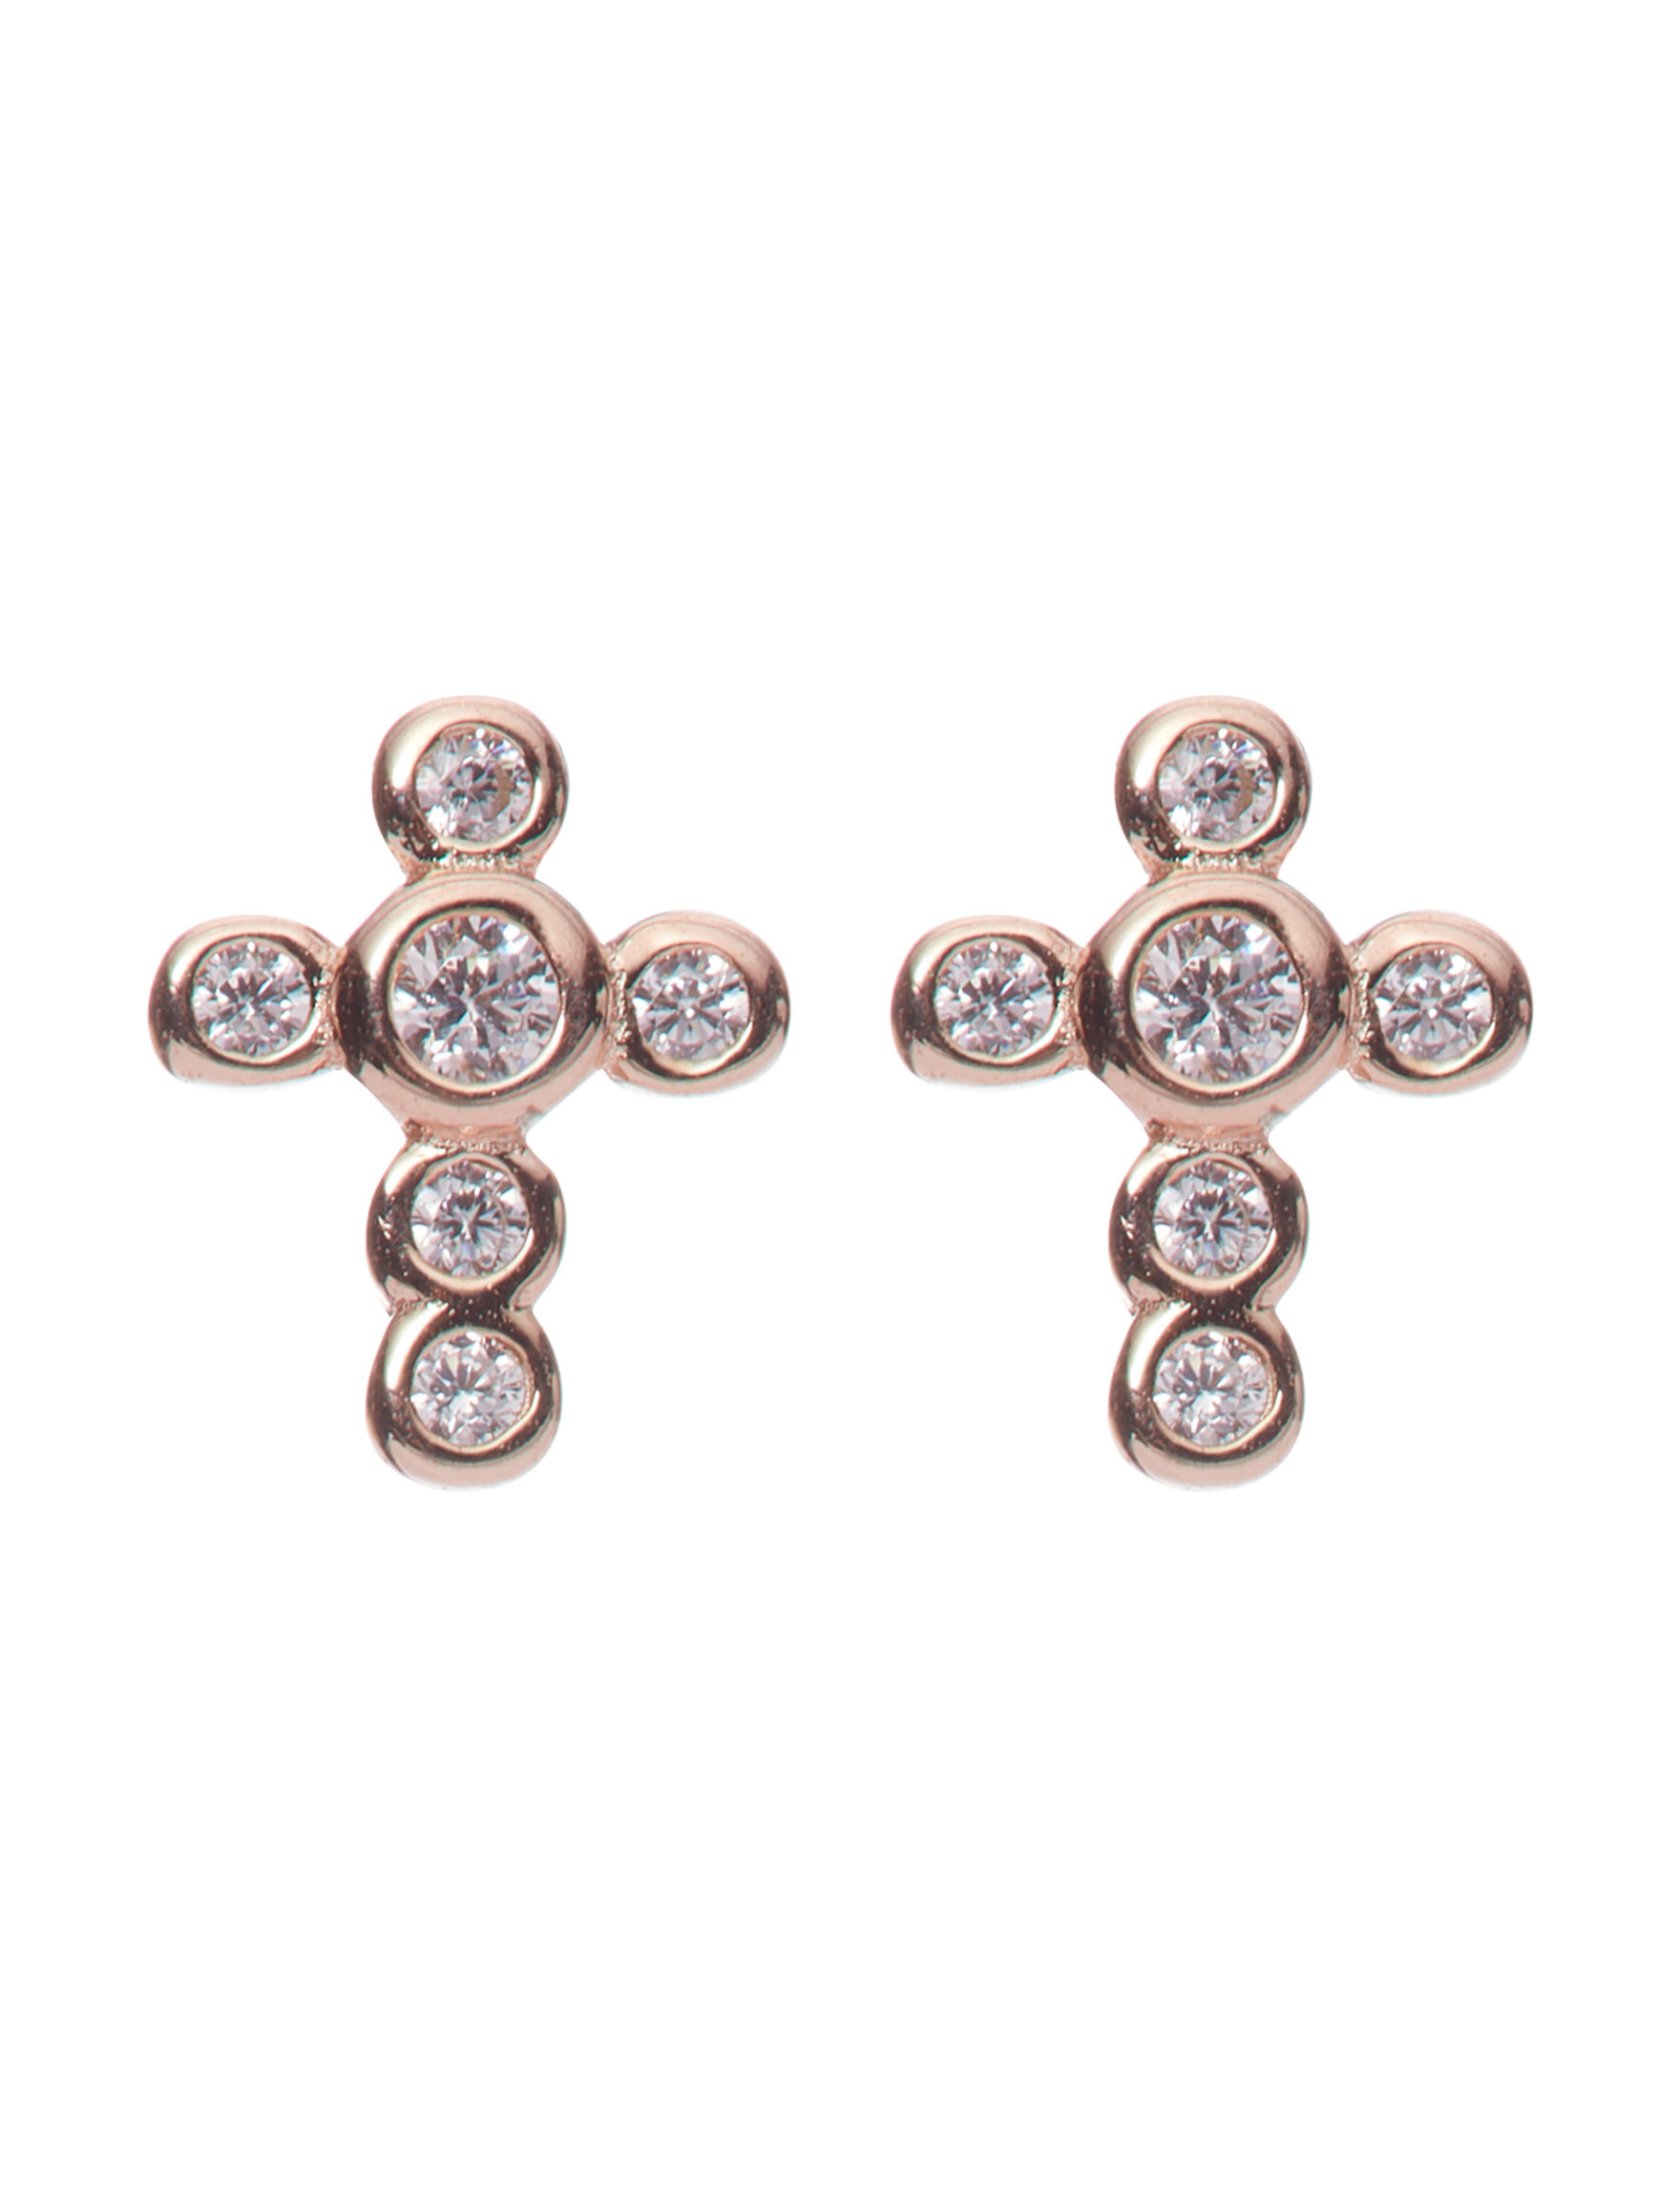 Marsala Rose Gold Studs Earrings Fine Jewelry